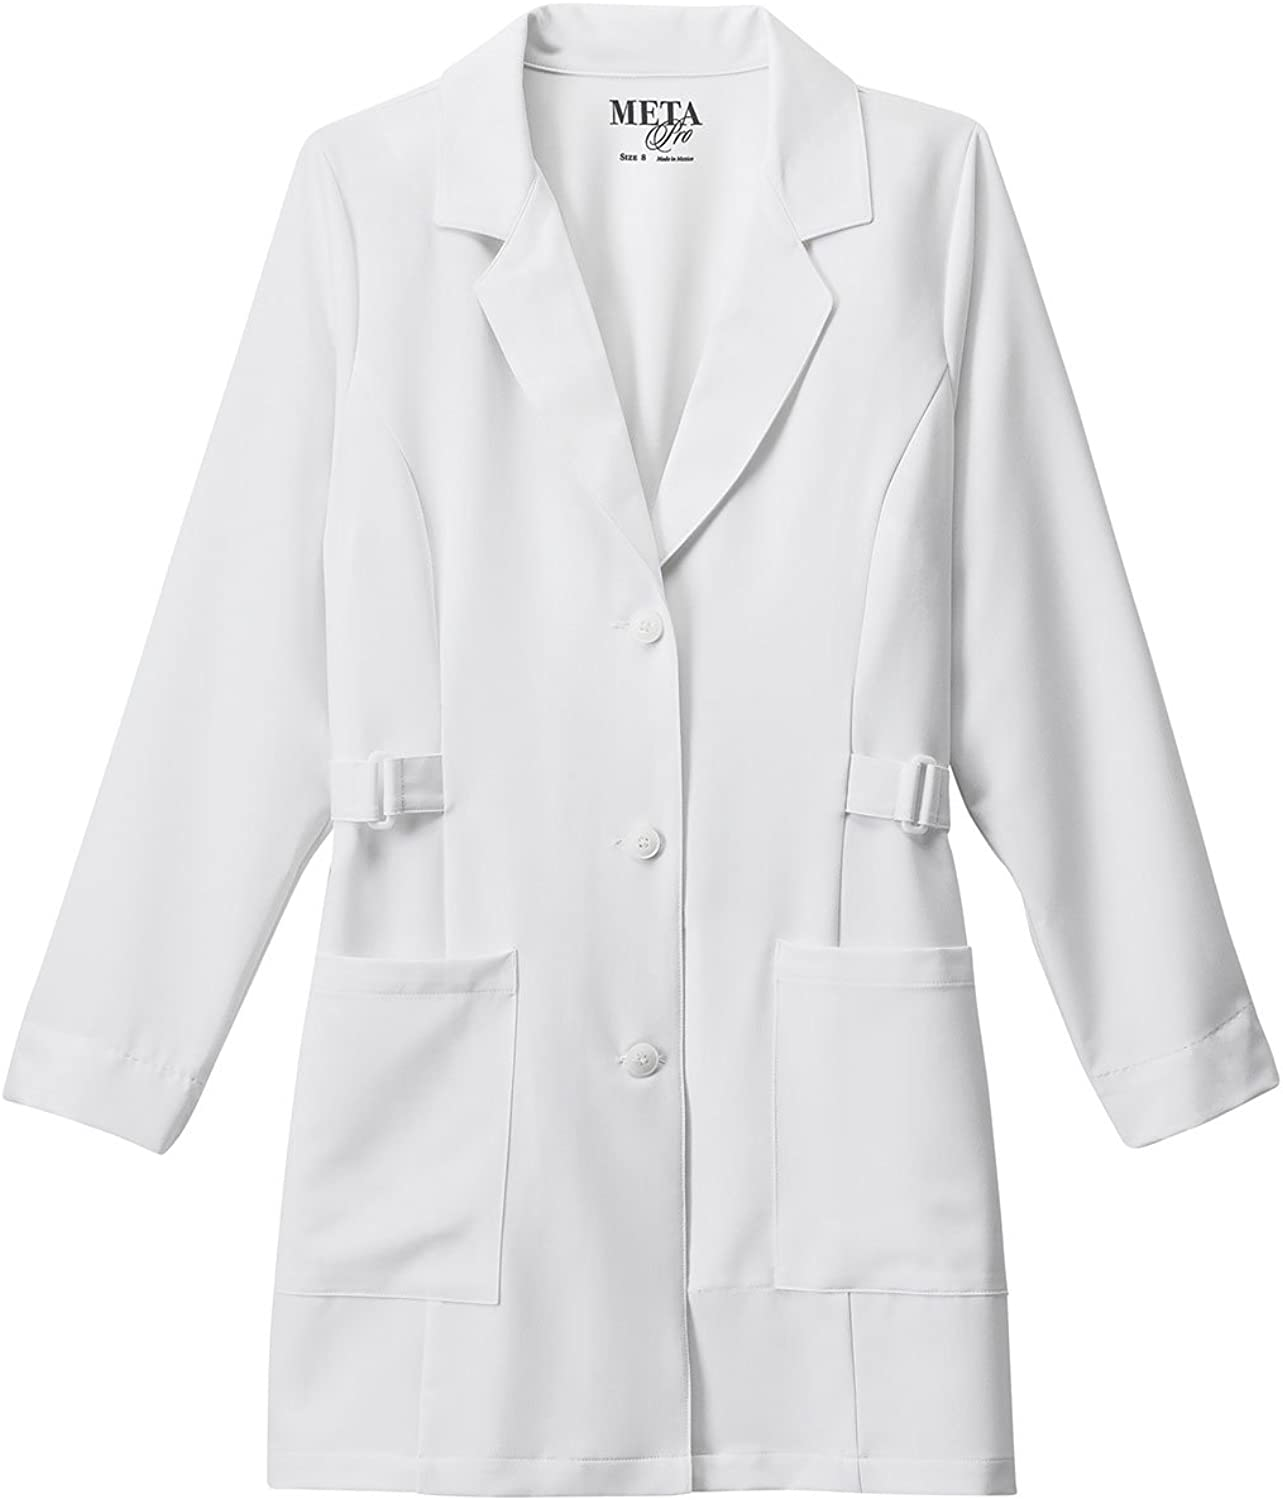 Meta 883 Women's 32 Buckle TriBlend Stretch Lab Coat White 20